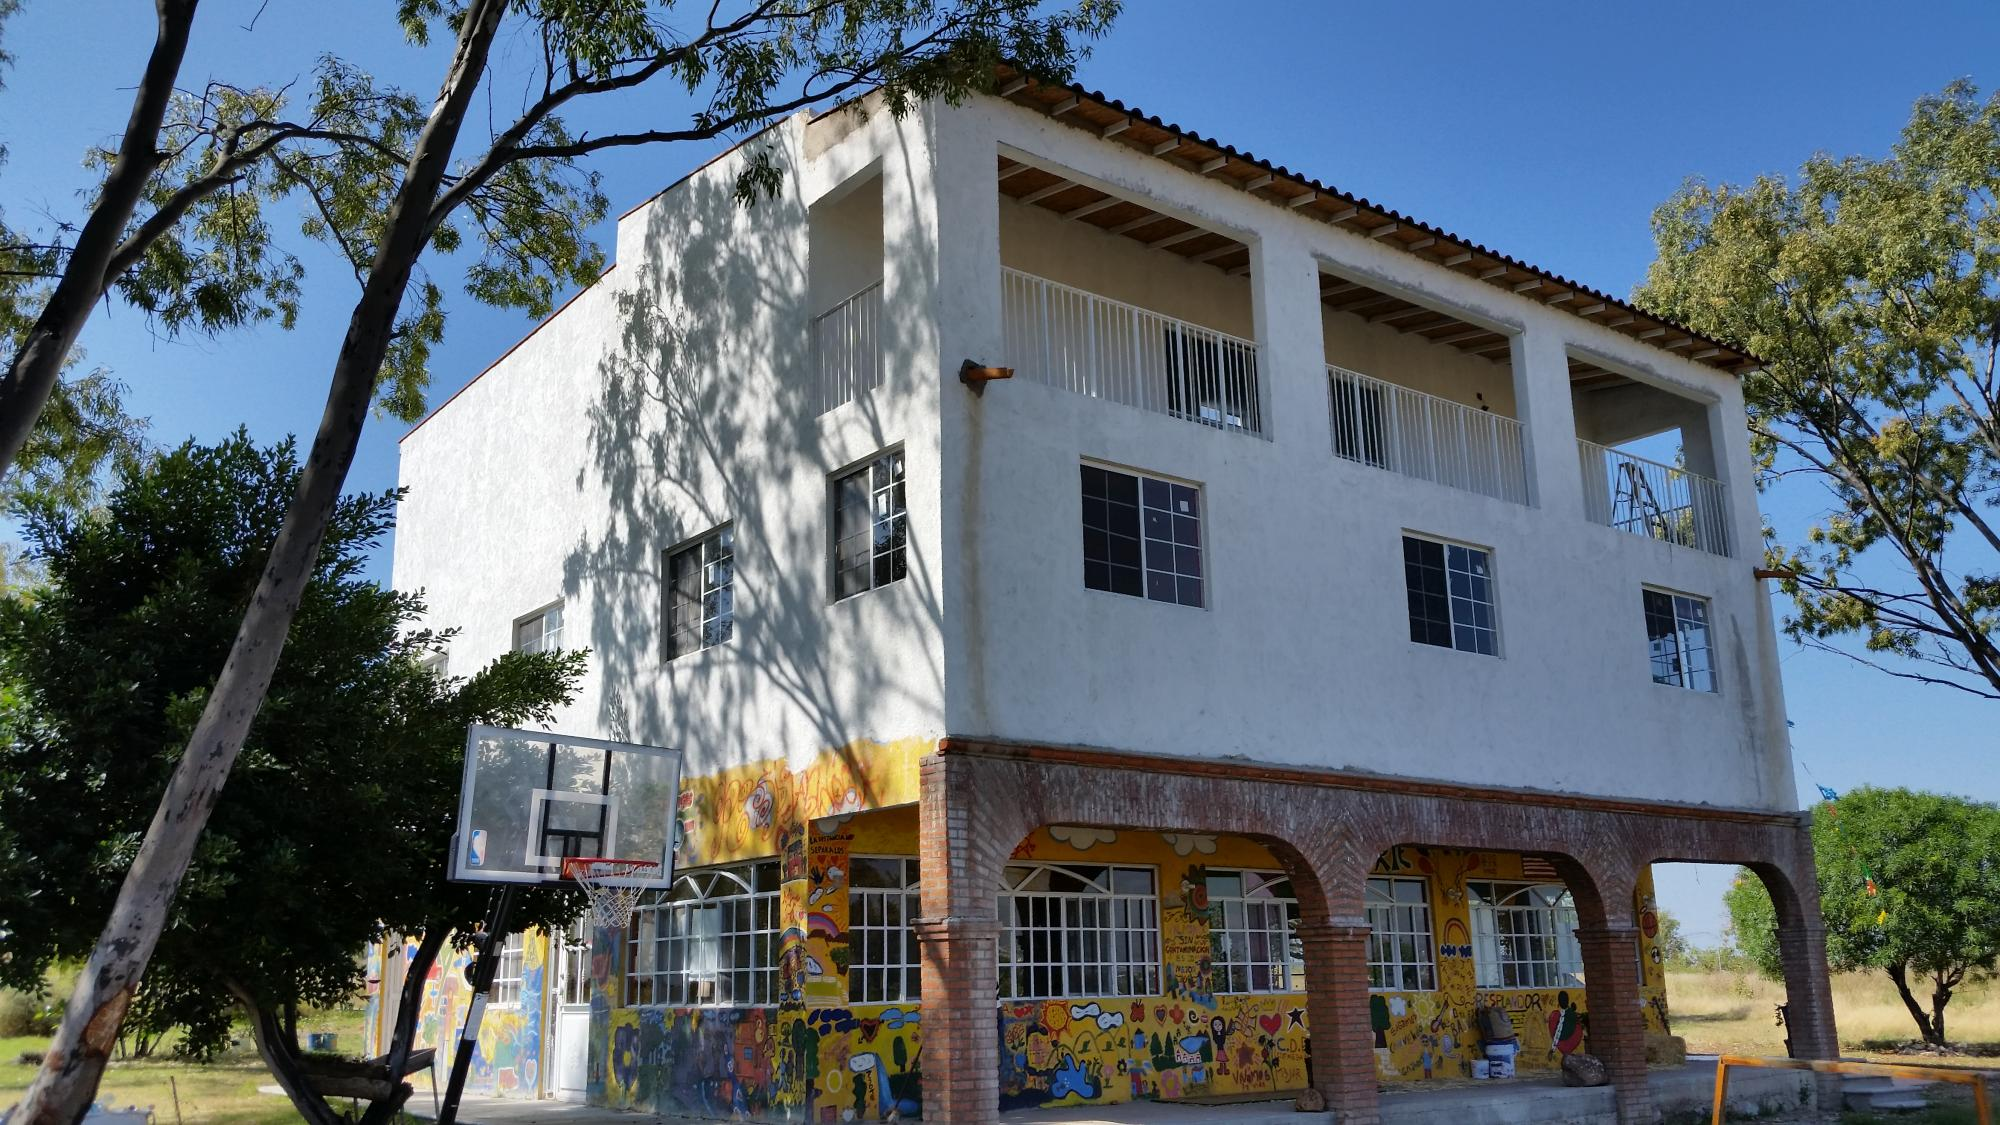 UA alumnus Nayalin Feller, who earned her doctorate from the College of Education, started the library at Resplandor in Mexico. The library is now expanding, and construction is scheduled to be completed in July in honor of Helena Todd, who was instrument